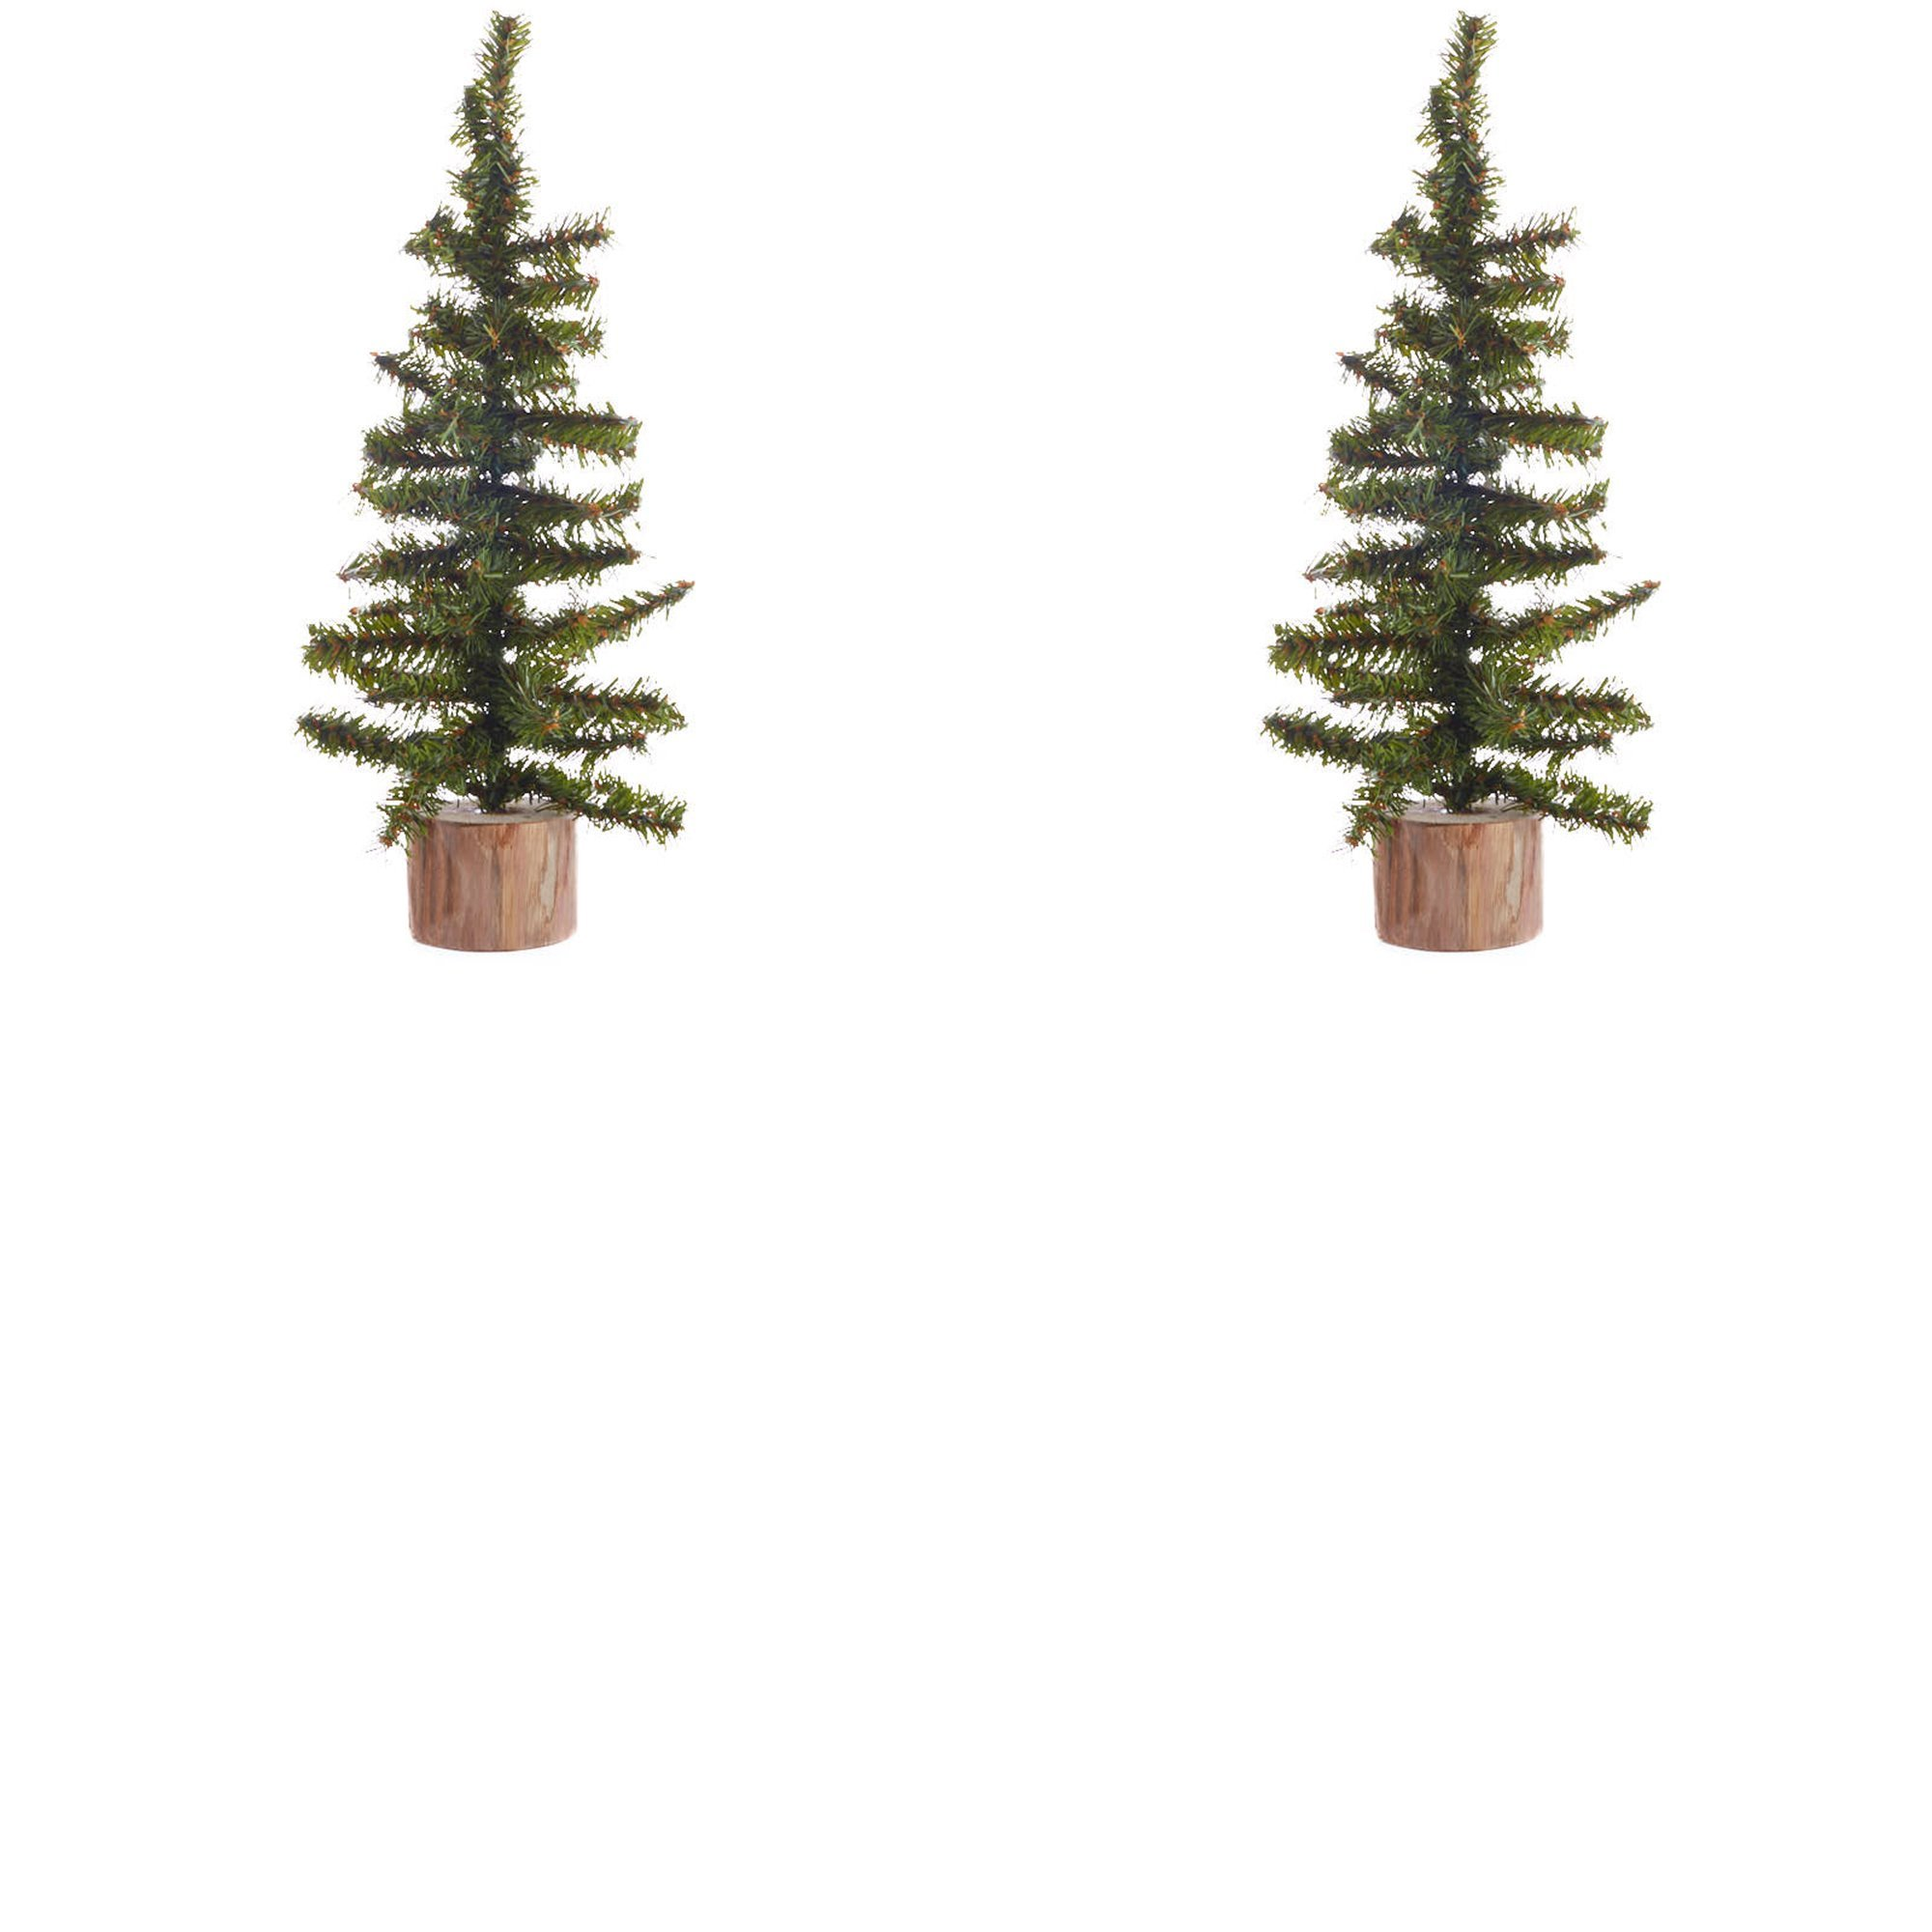 Factory Direct Craft Group of 2 Artificial Small Pine Christmas Trees with Wood Base - 12 Inches